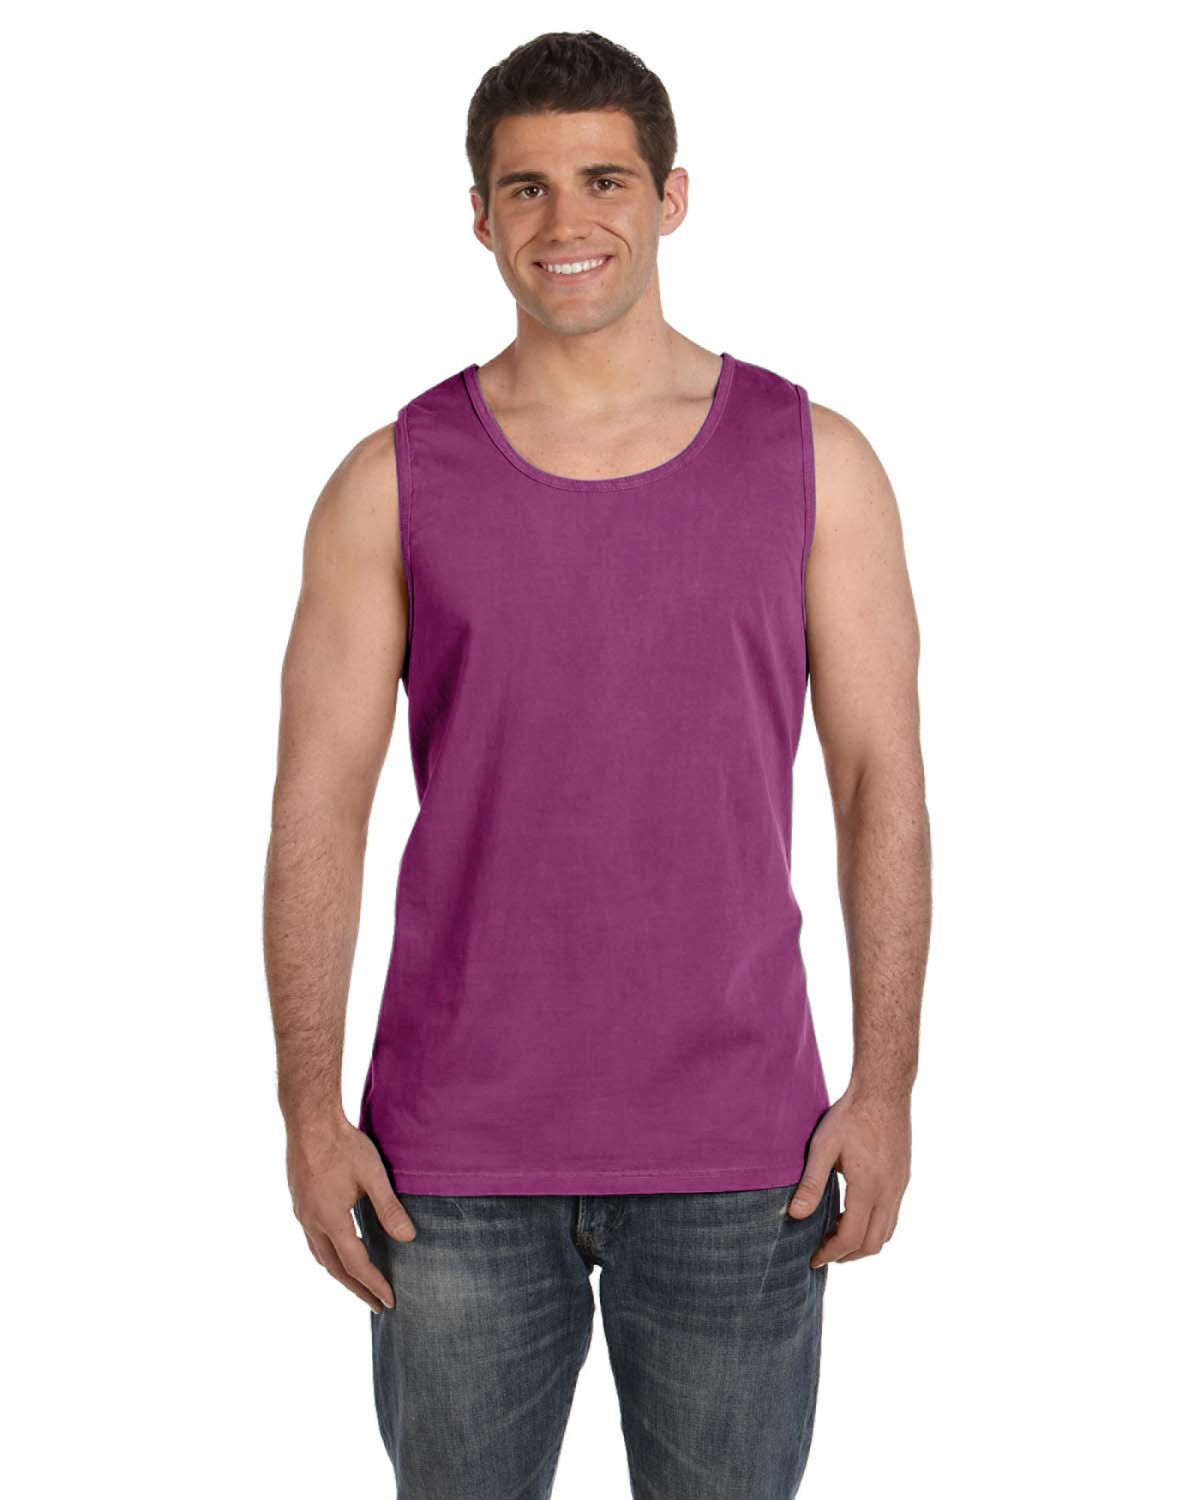 C9360 Comfort Colors BOYSENBERRY